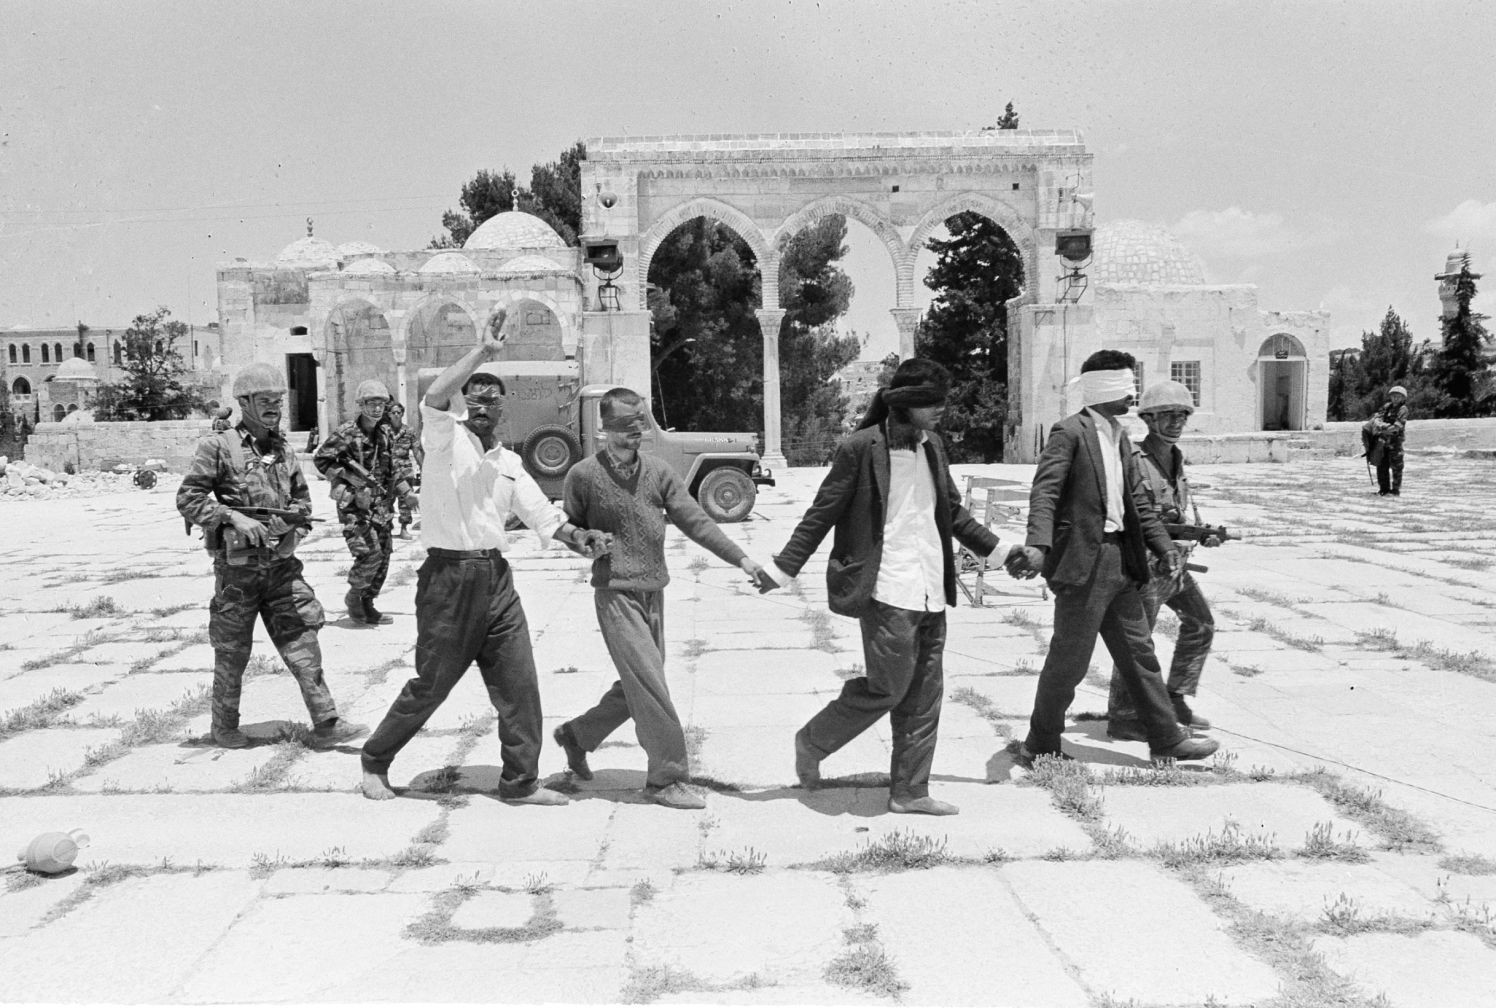 Arabs are led blindfolded to interrogation by Israeli soldiers in the old city of Jerusalem, June 8, 1967. (AP Photo)